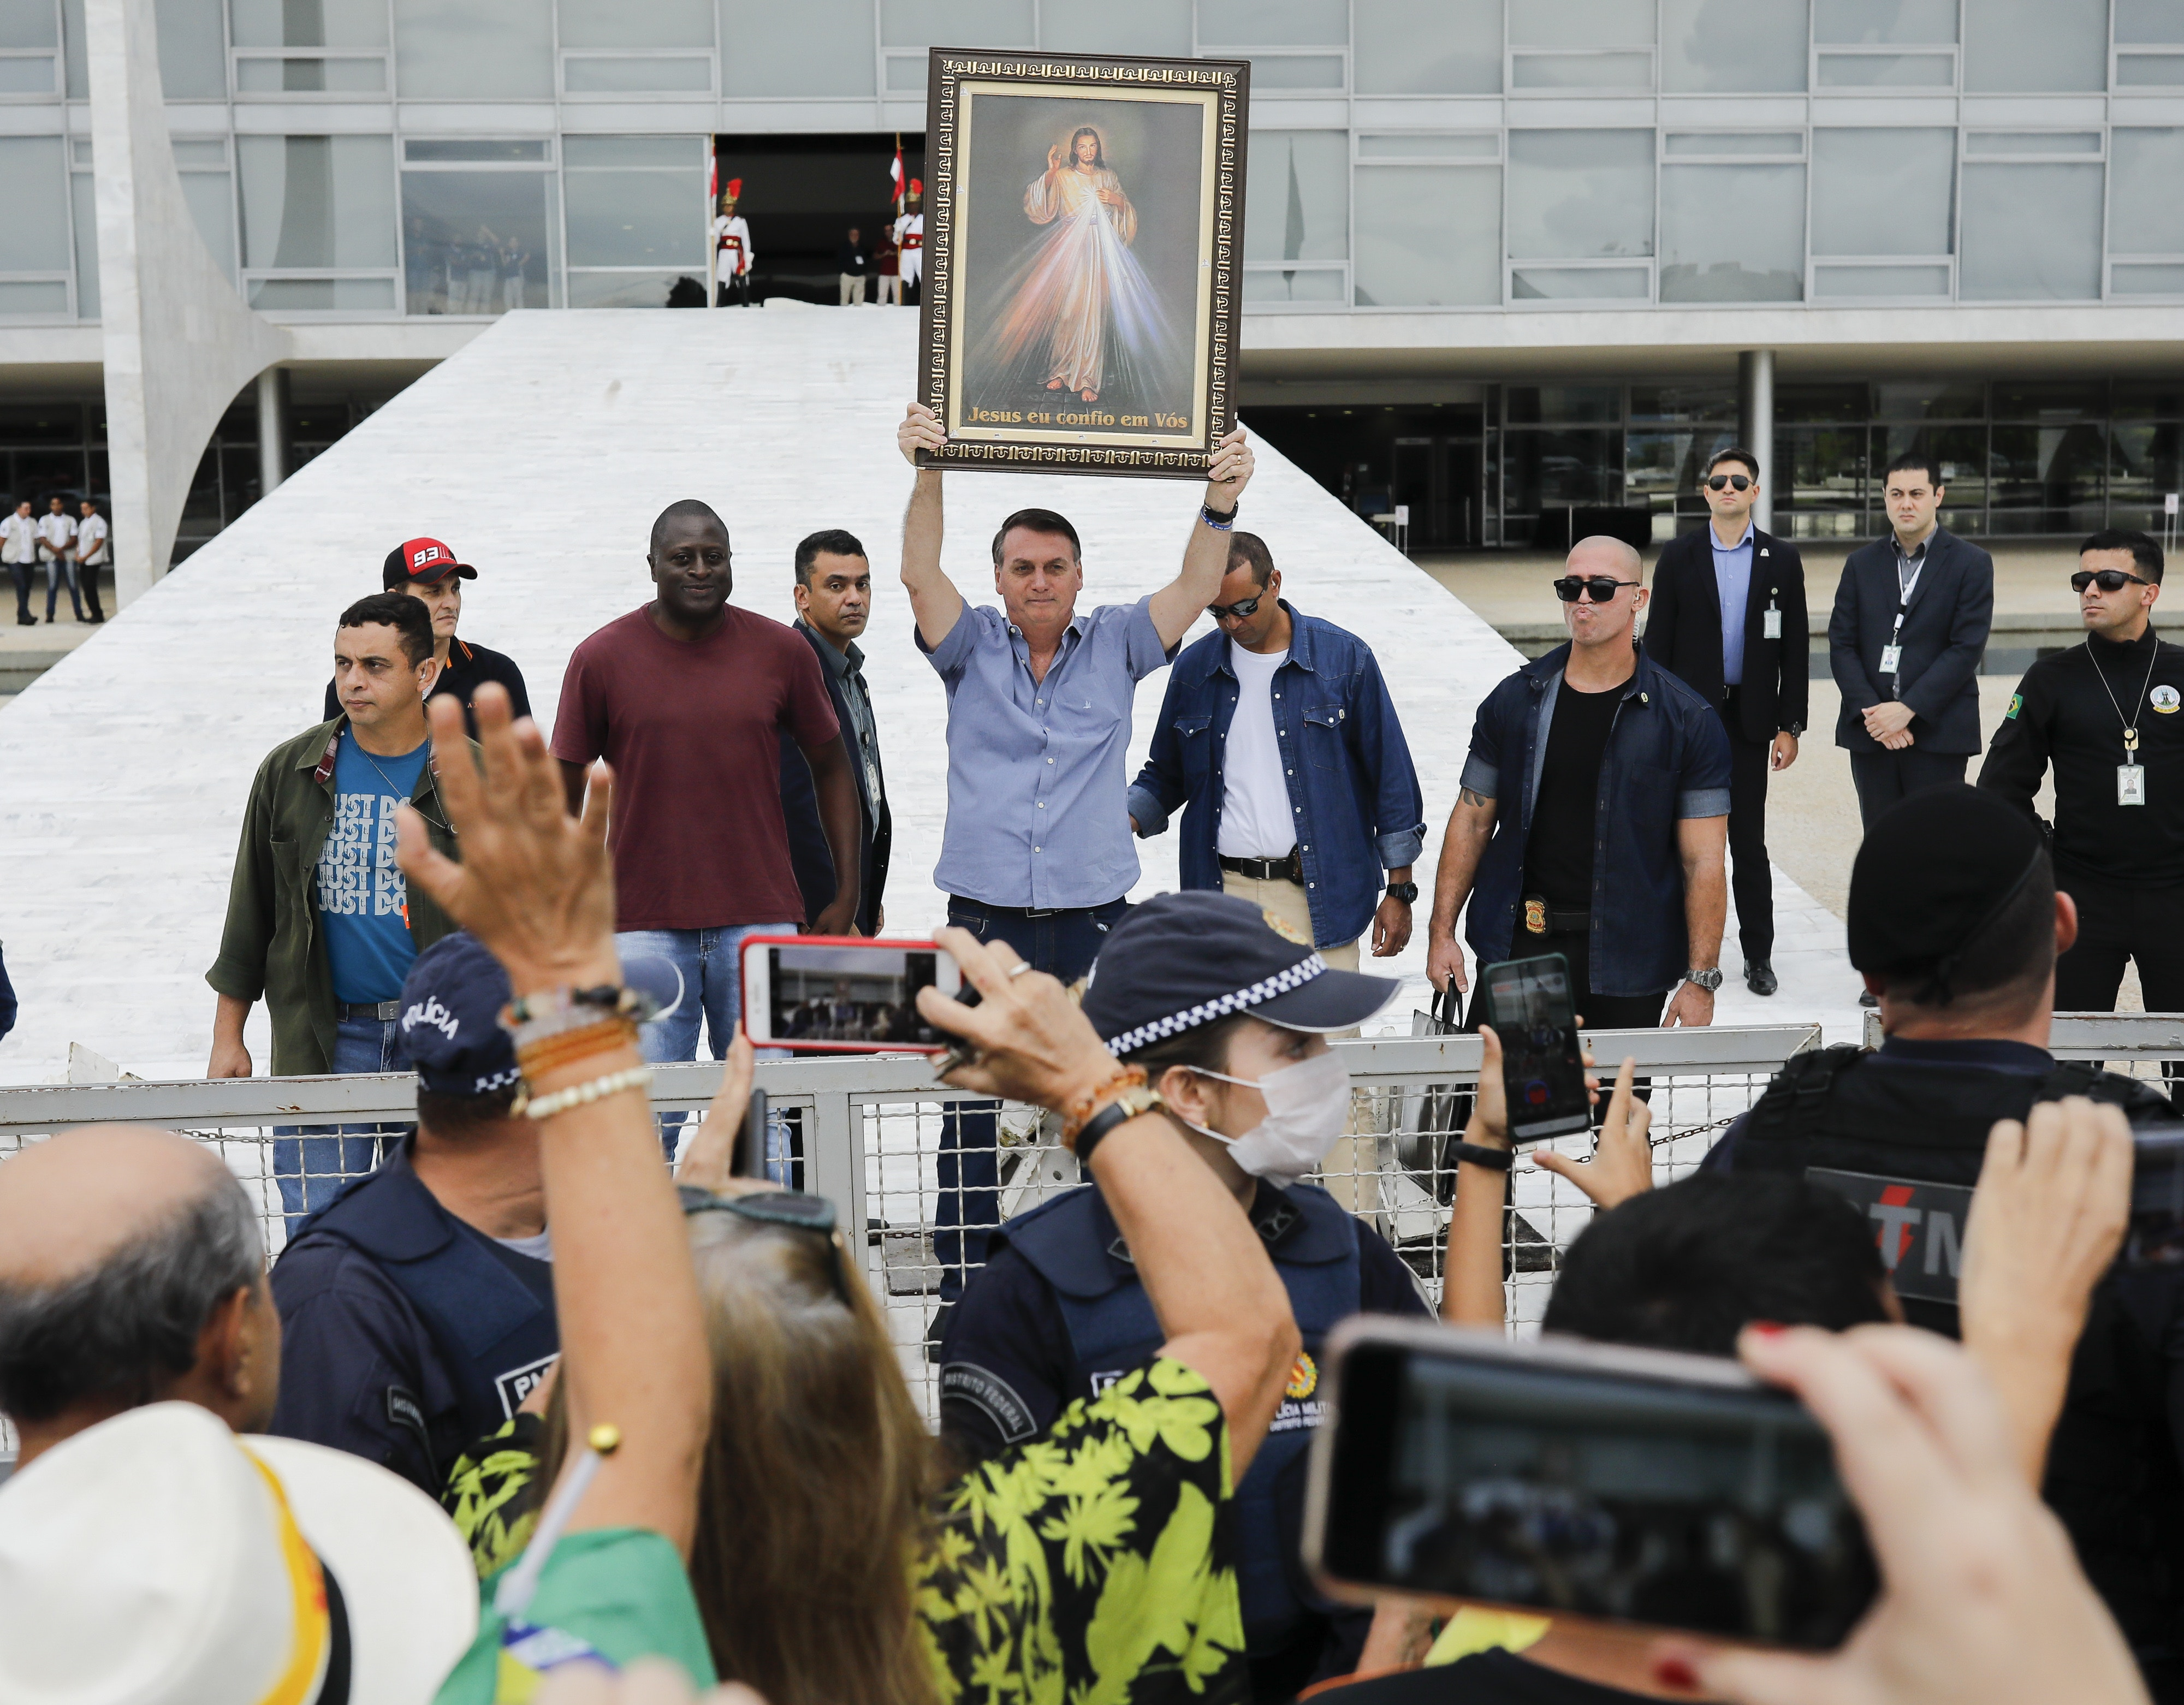 Brazilian President Jair Bolsonaro raises an image of Jesus Christ during a gathering with Catholic and anti-abortion supporters in front of Planalto Palace in Brasilia on April 18, 2020 amid the coronavirus COVID-19 pandemic. - Brazilian President Jair Bolsonaro on Friday defended his decision to restart economic activity in the middle of the coronavirus pandemic, after sacking his health minister over differences in how to tackle the disease. (Photo by Sergio LIMA / AFP) (Photo by SERGIO LIMA/AFP via Getty Images)